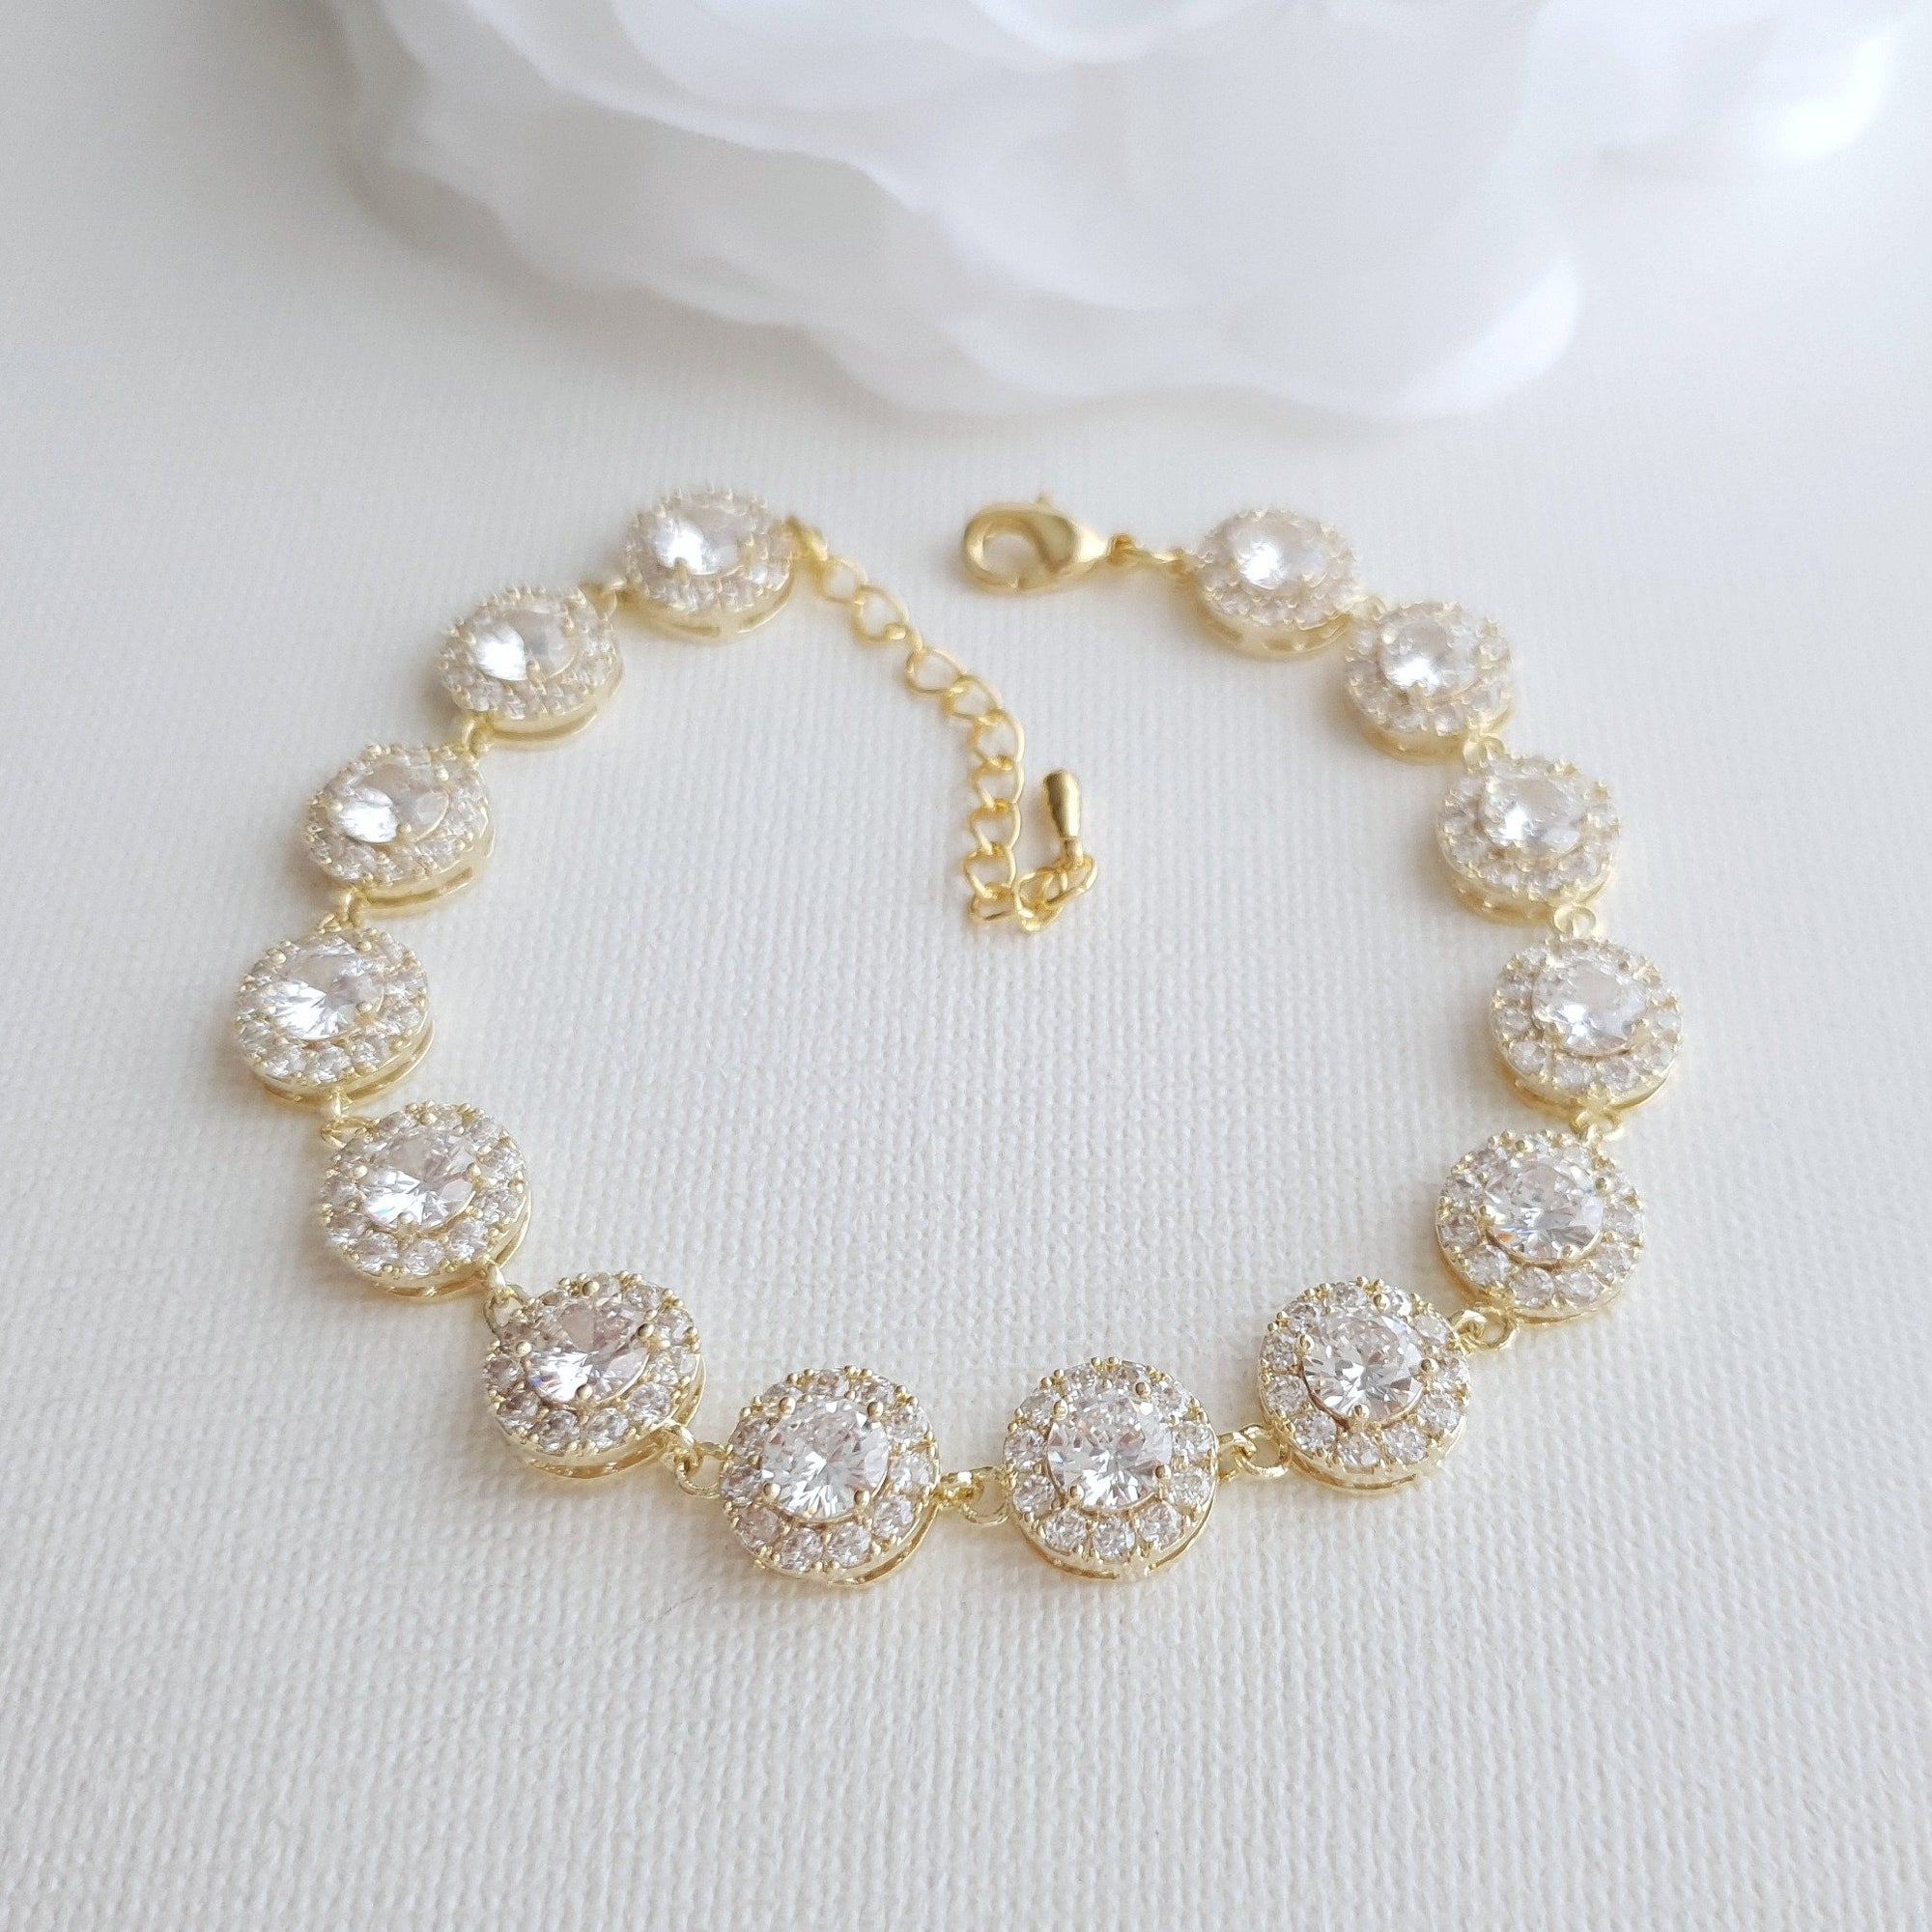 Gold Bridal Bracelet for Weddings in Round Cubic Zirconia -Cristle - PoetryDesigns